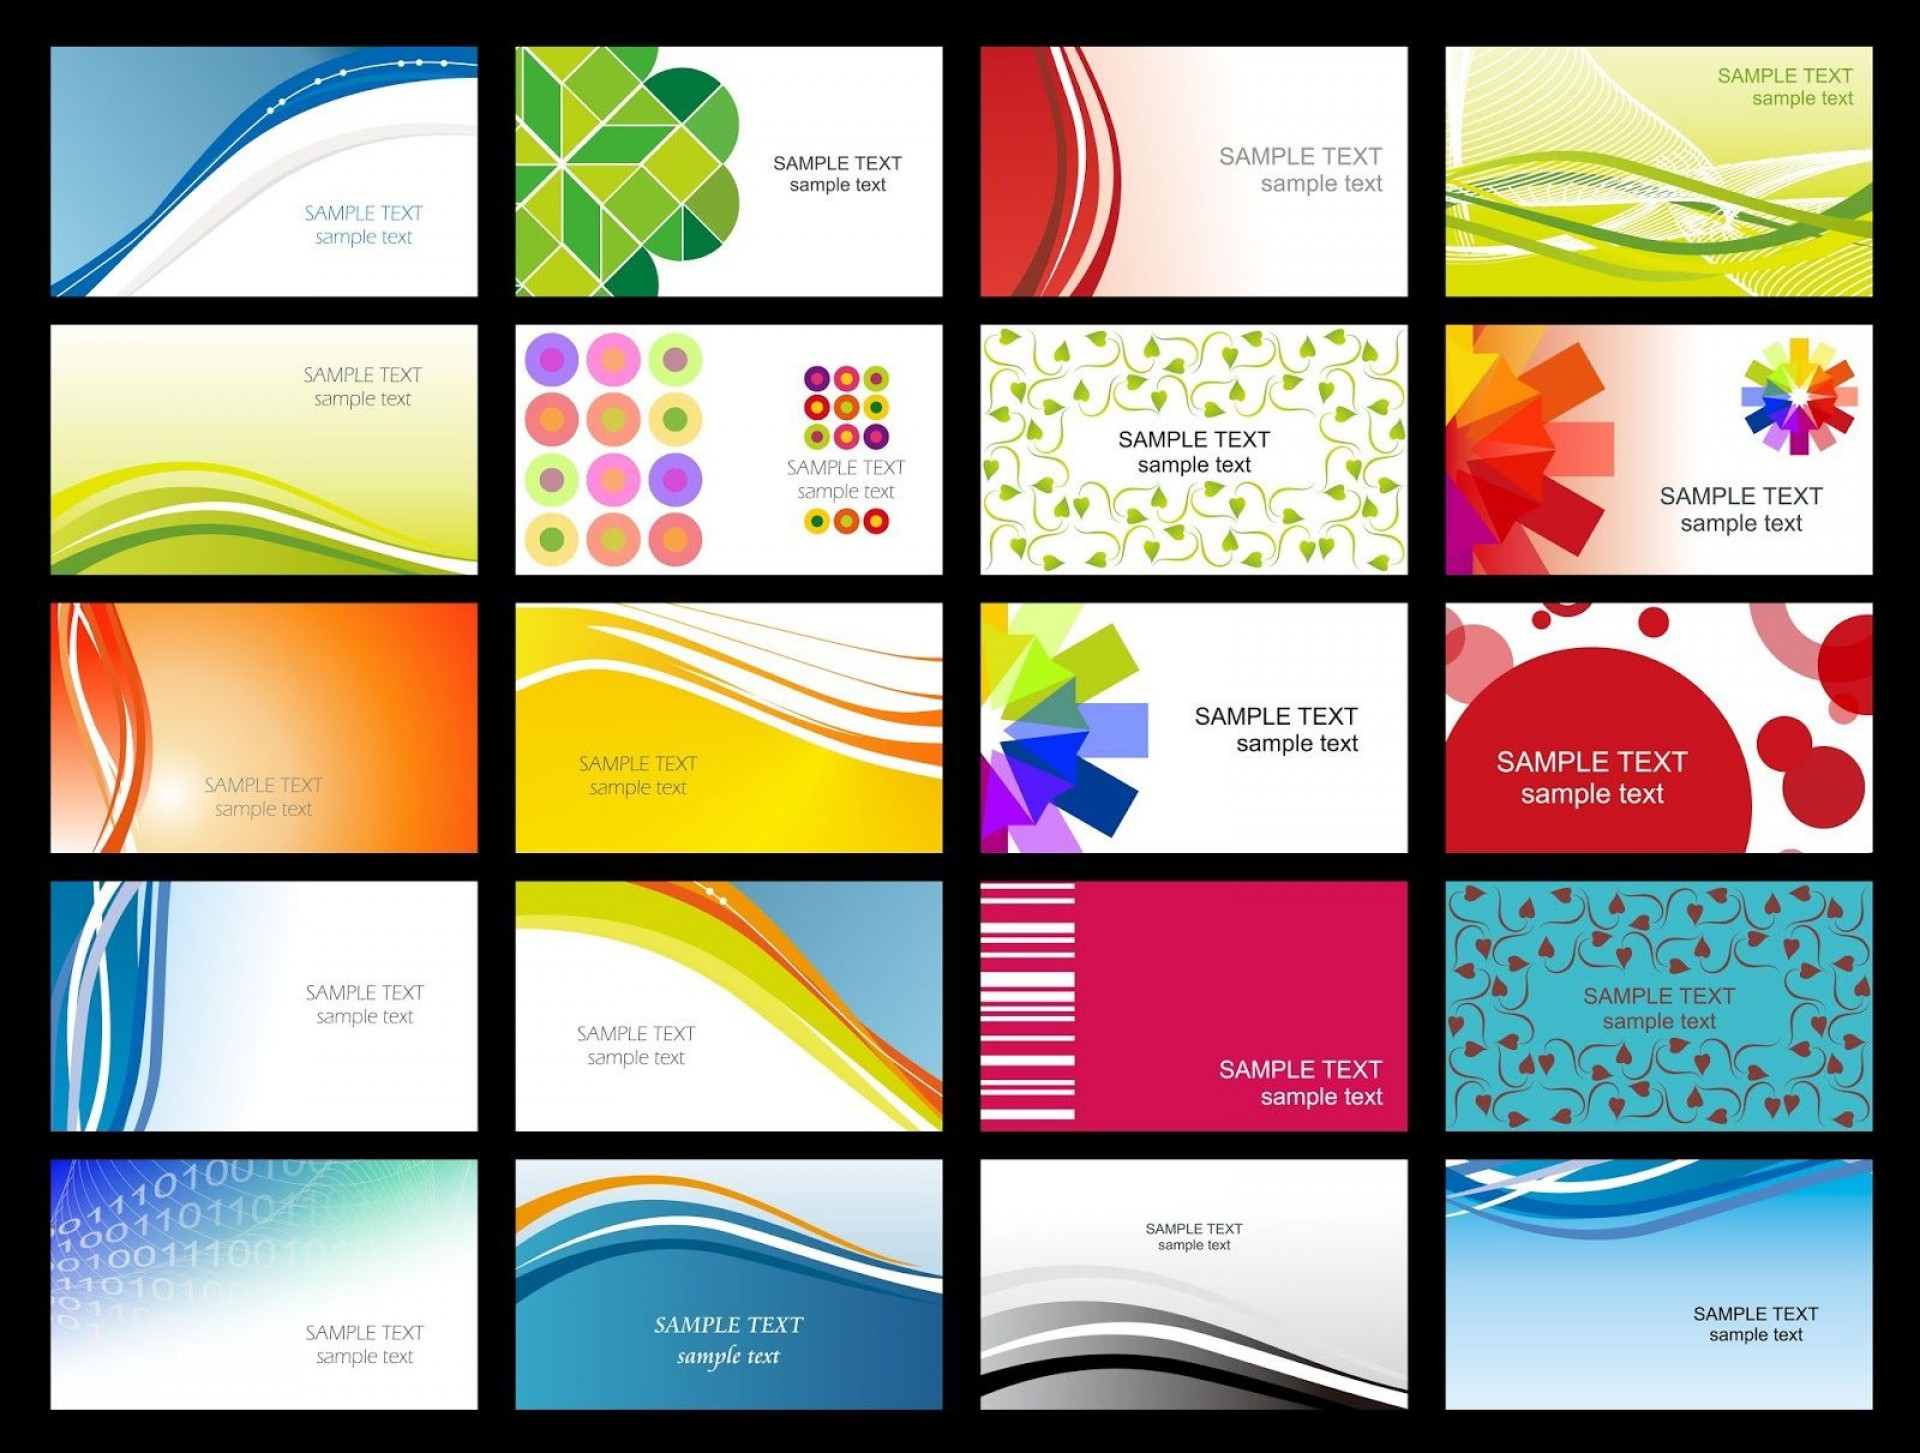 005 Incredible Name Card Template Free Download Image  Table Ai Wedding1920